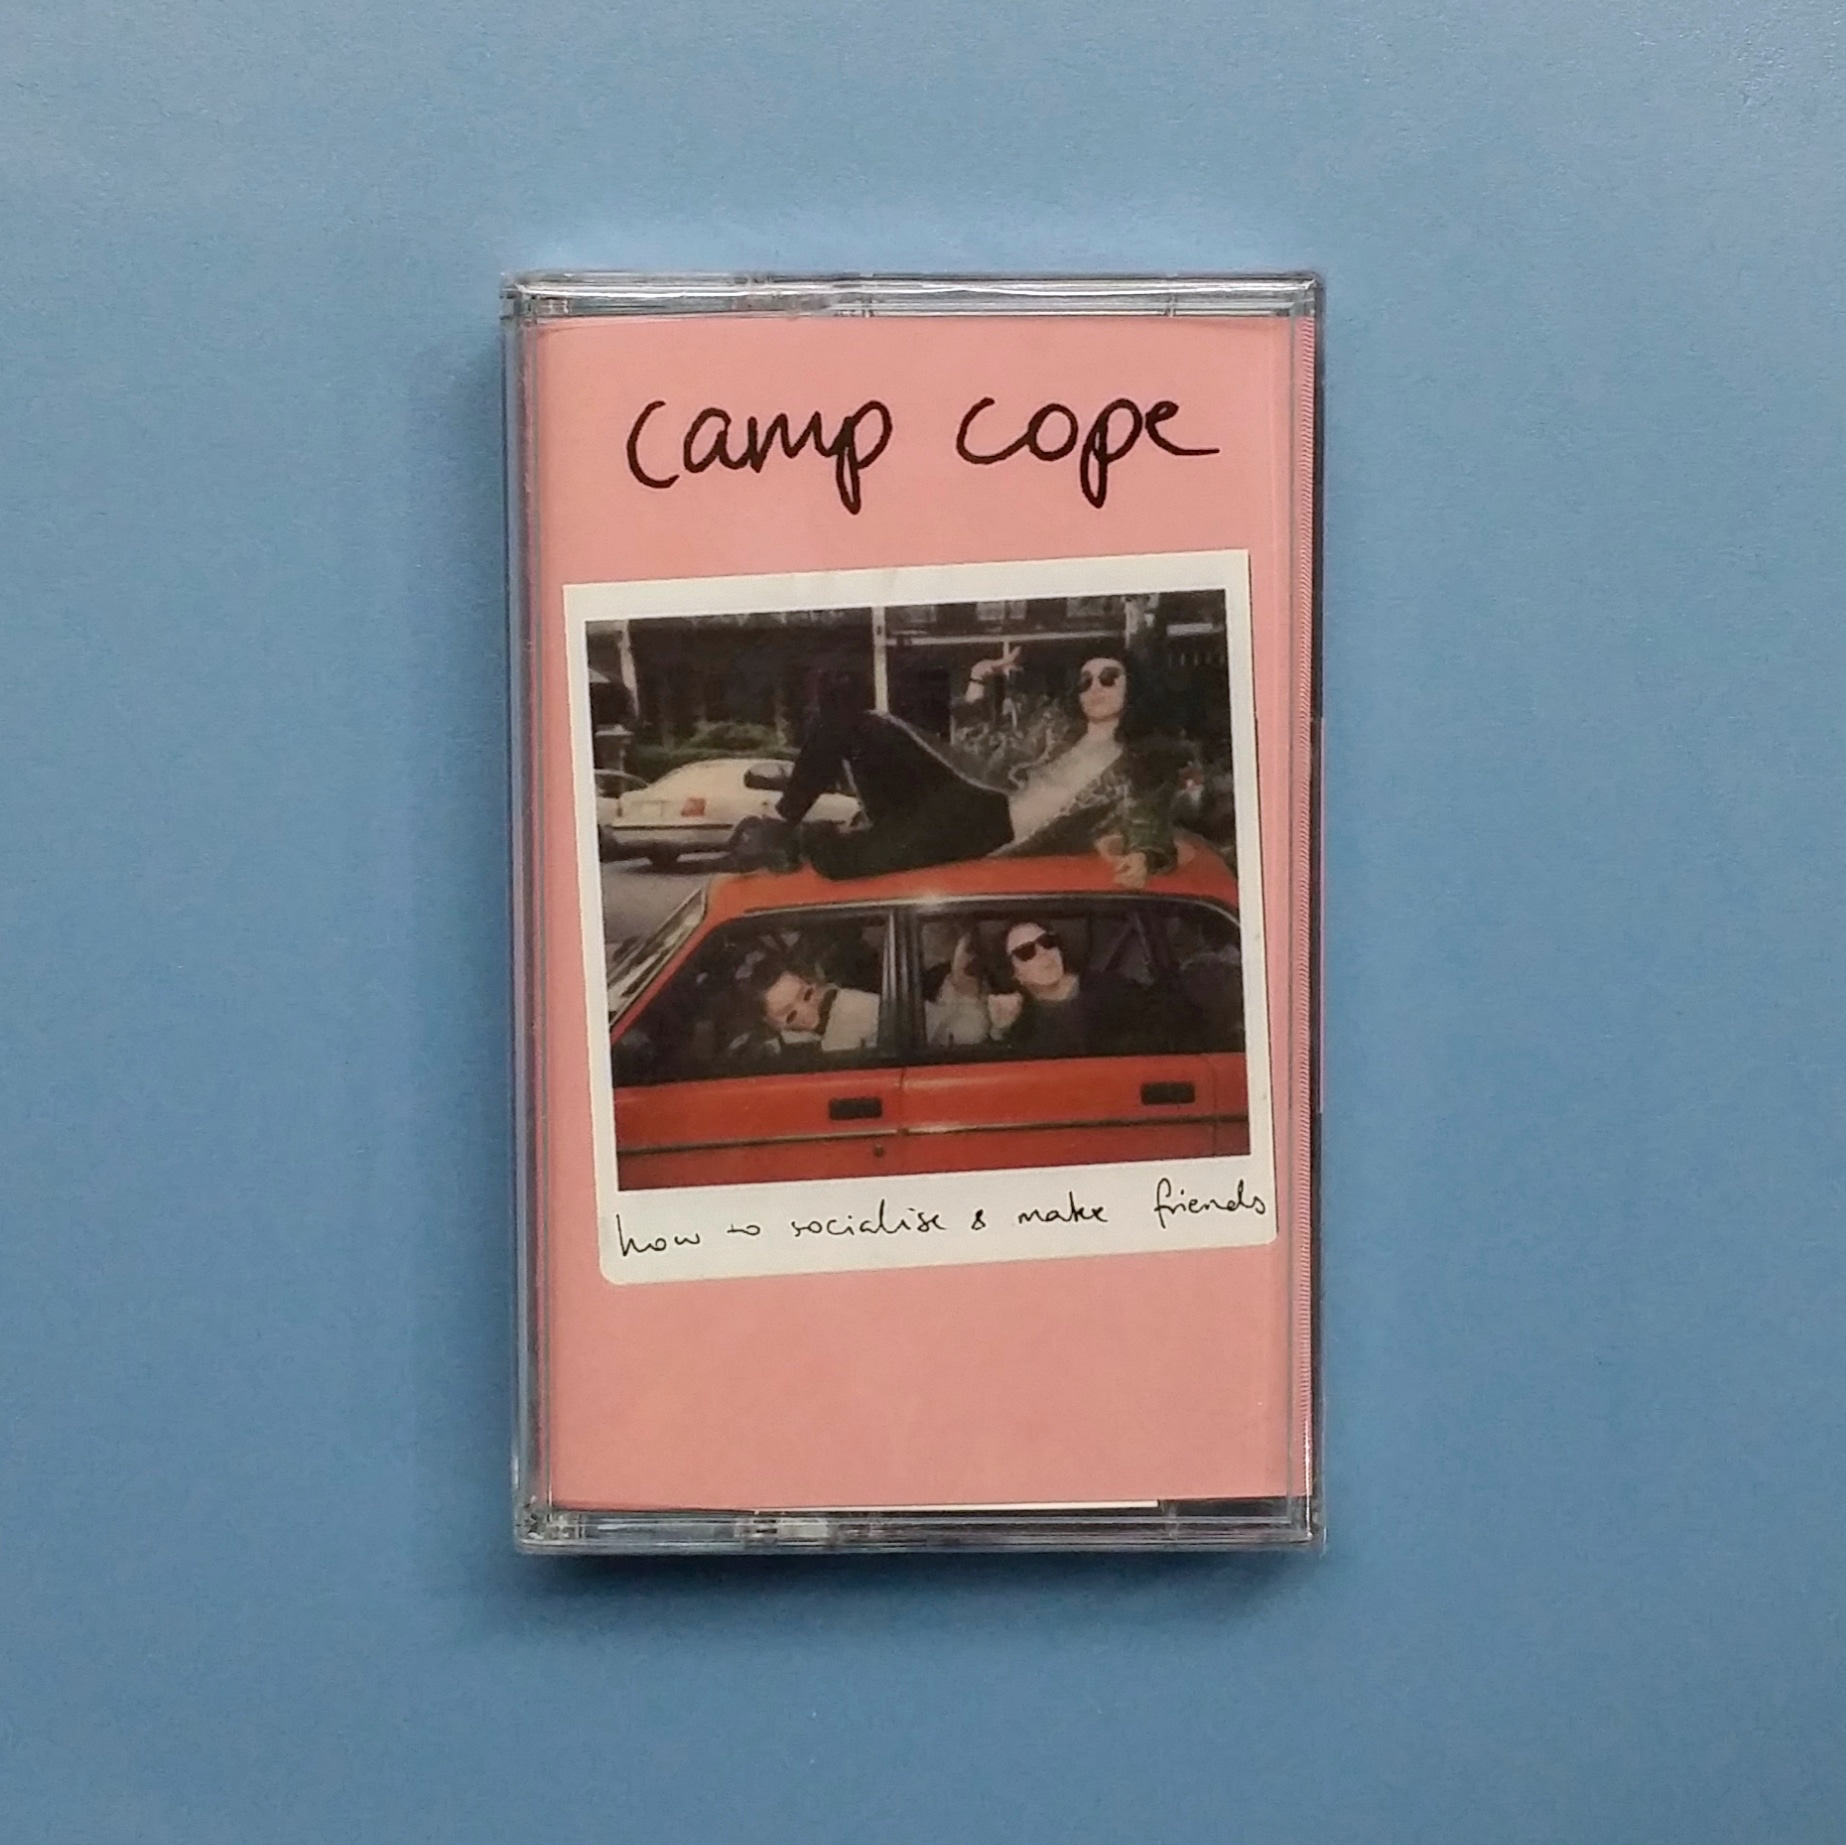 Camp Cope - How to Socialise & Make Friends (Run for Cover Records)